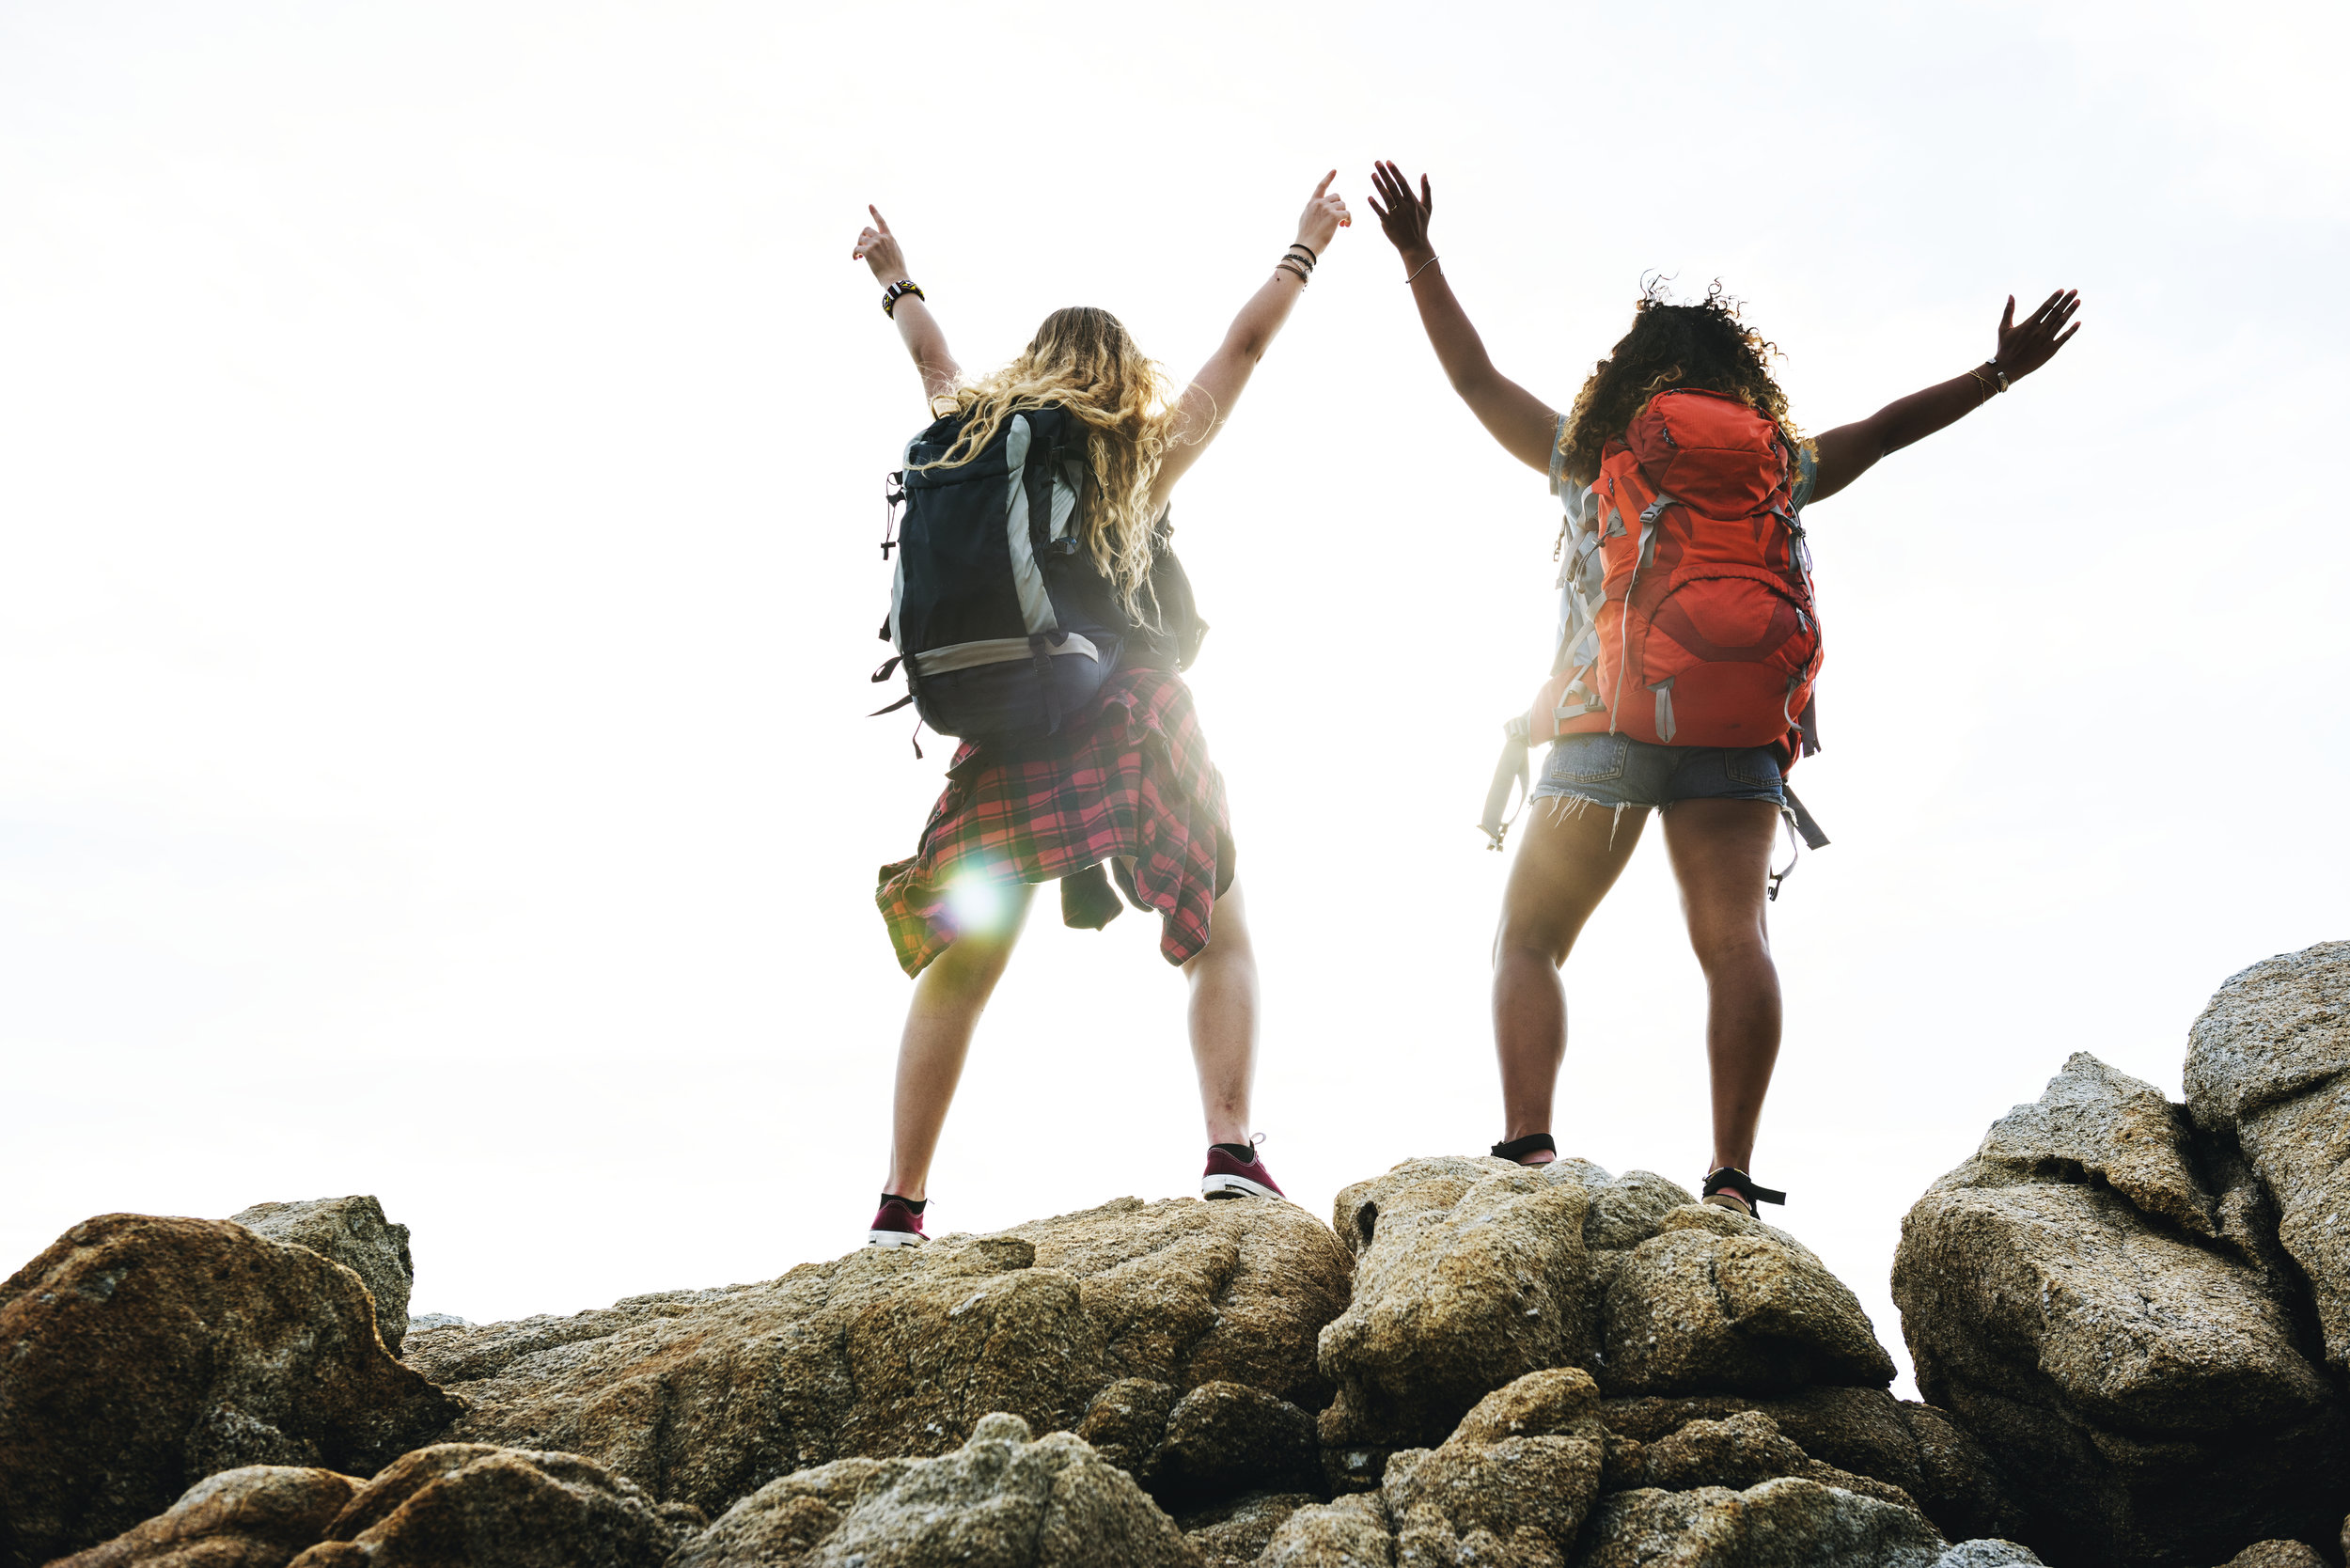 Do you require vaccinations or have a physical or mental health concern? - If you are a gap year traveller or backpacker travelling independently please go to our travel clinic page. If you are a volunteer or traveller with an agency and have a health concern, contact your agency first, but if this is not possible, please do contact us.